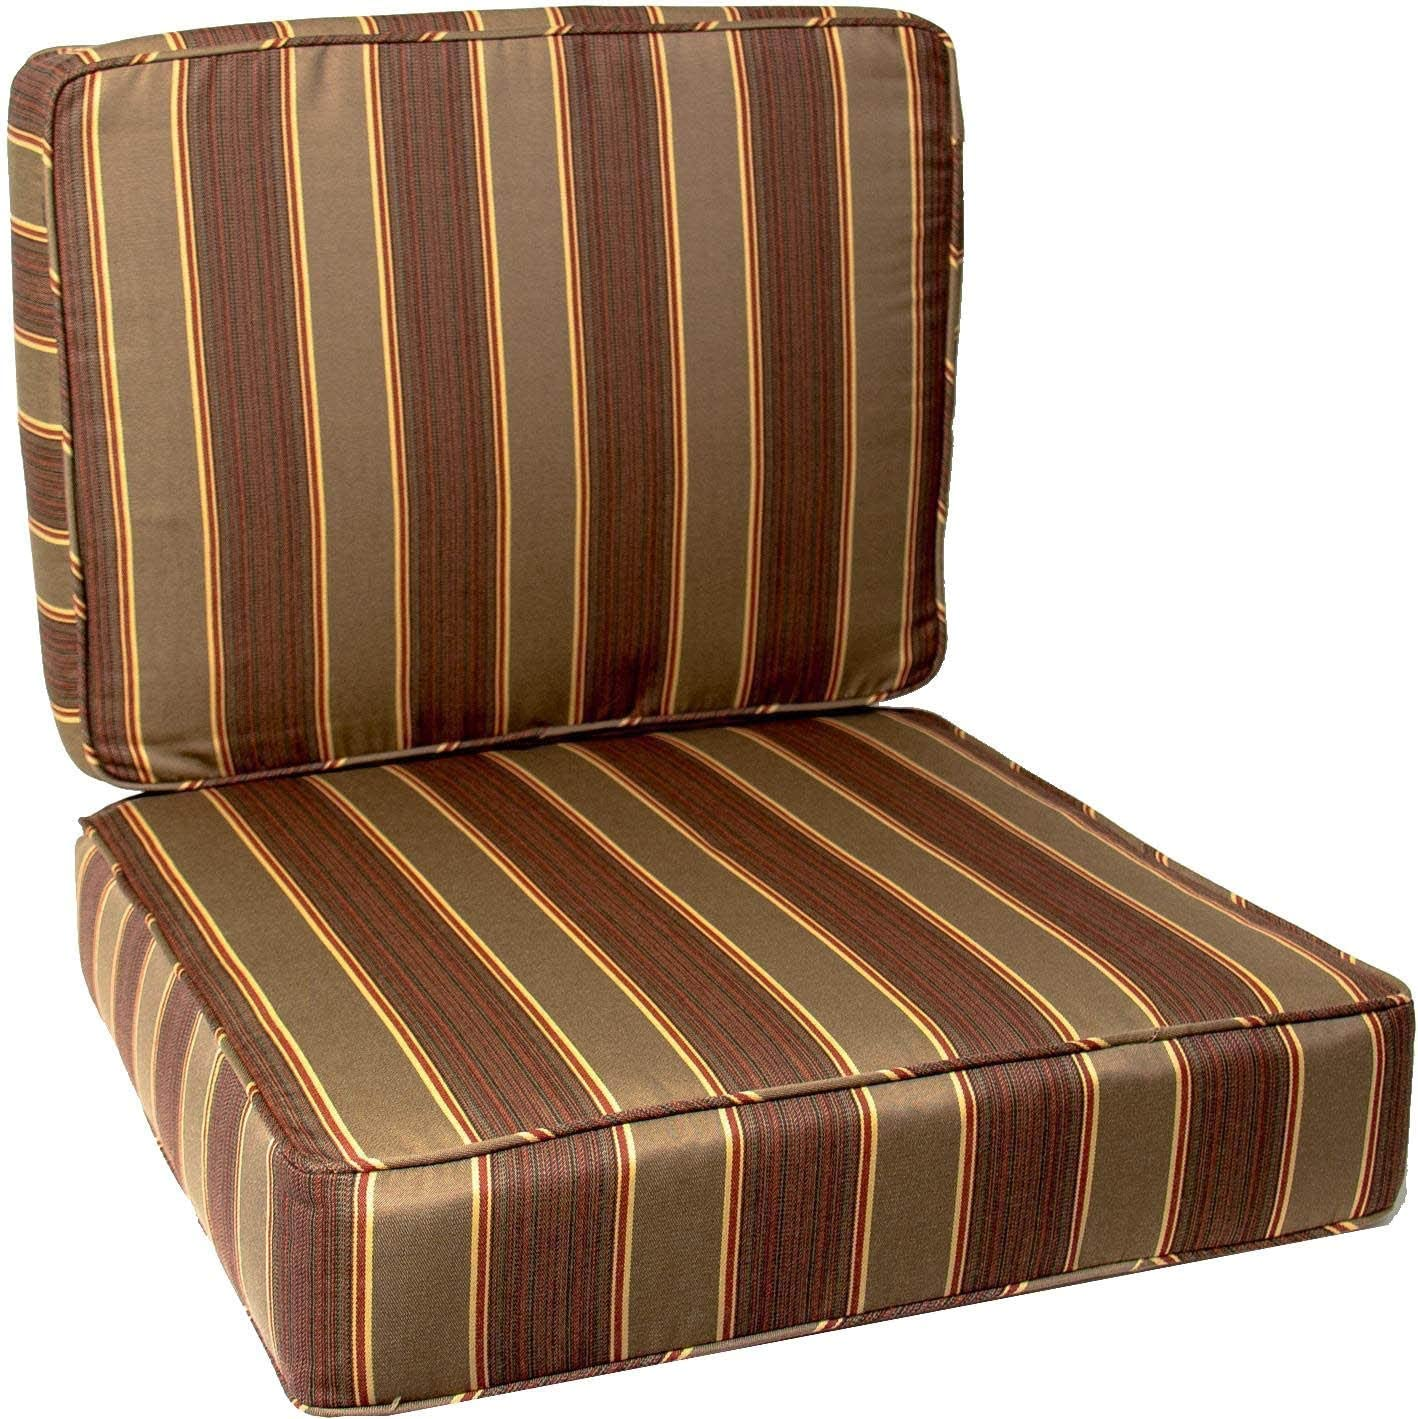 BBQGUYS Sunbrella Davidson Redwood Large Outdoor Replacement Club Chair Cushion Set W/Piping